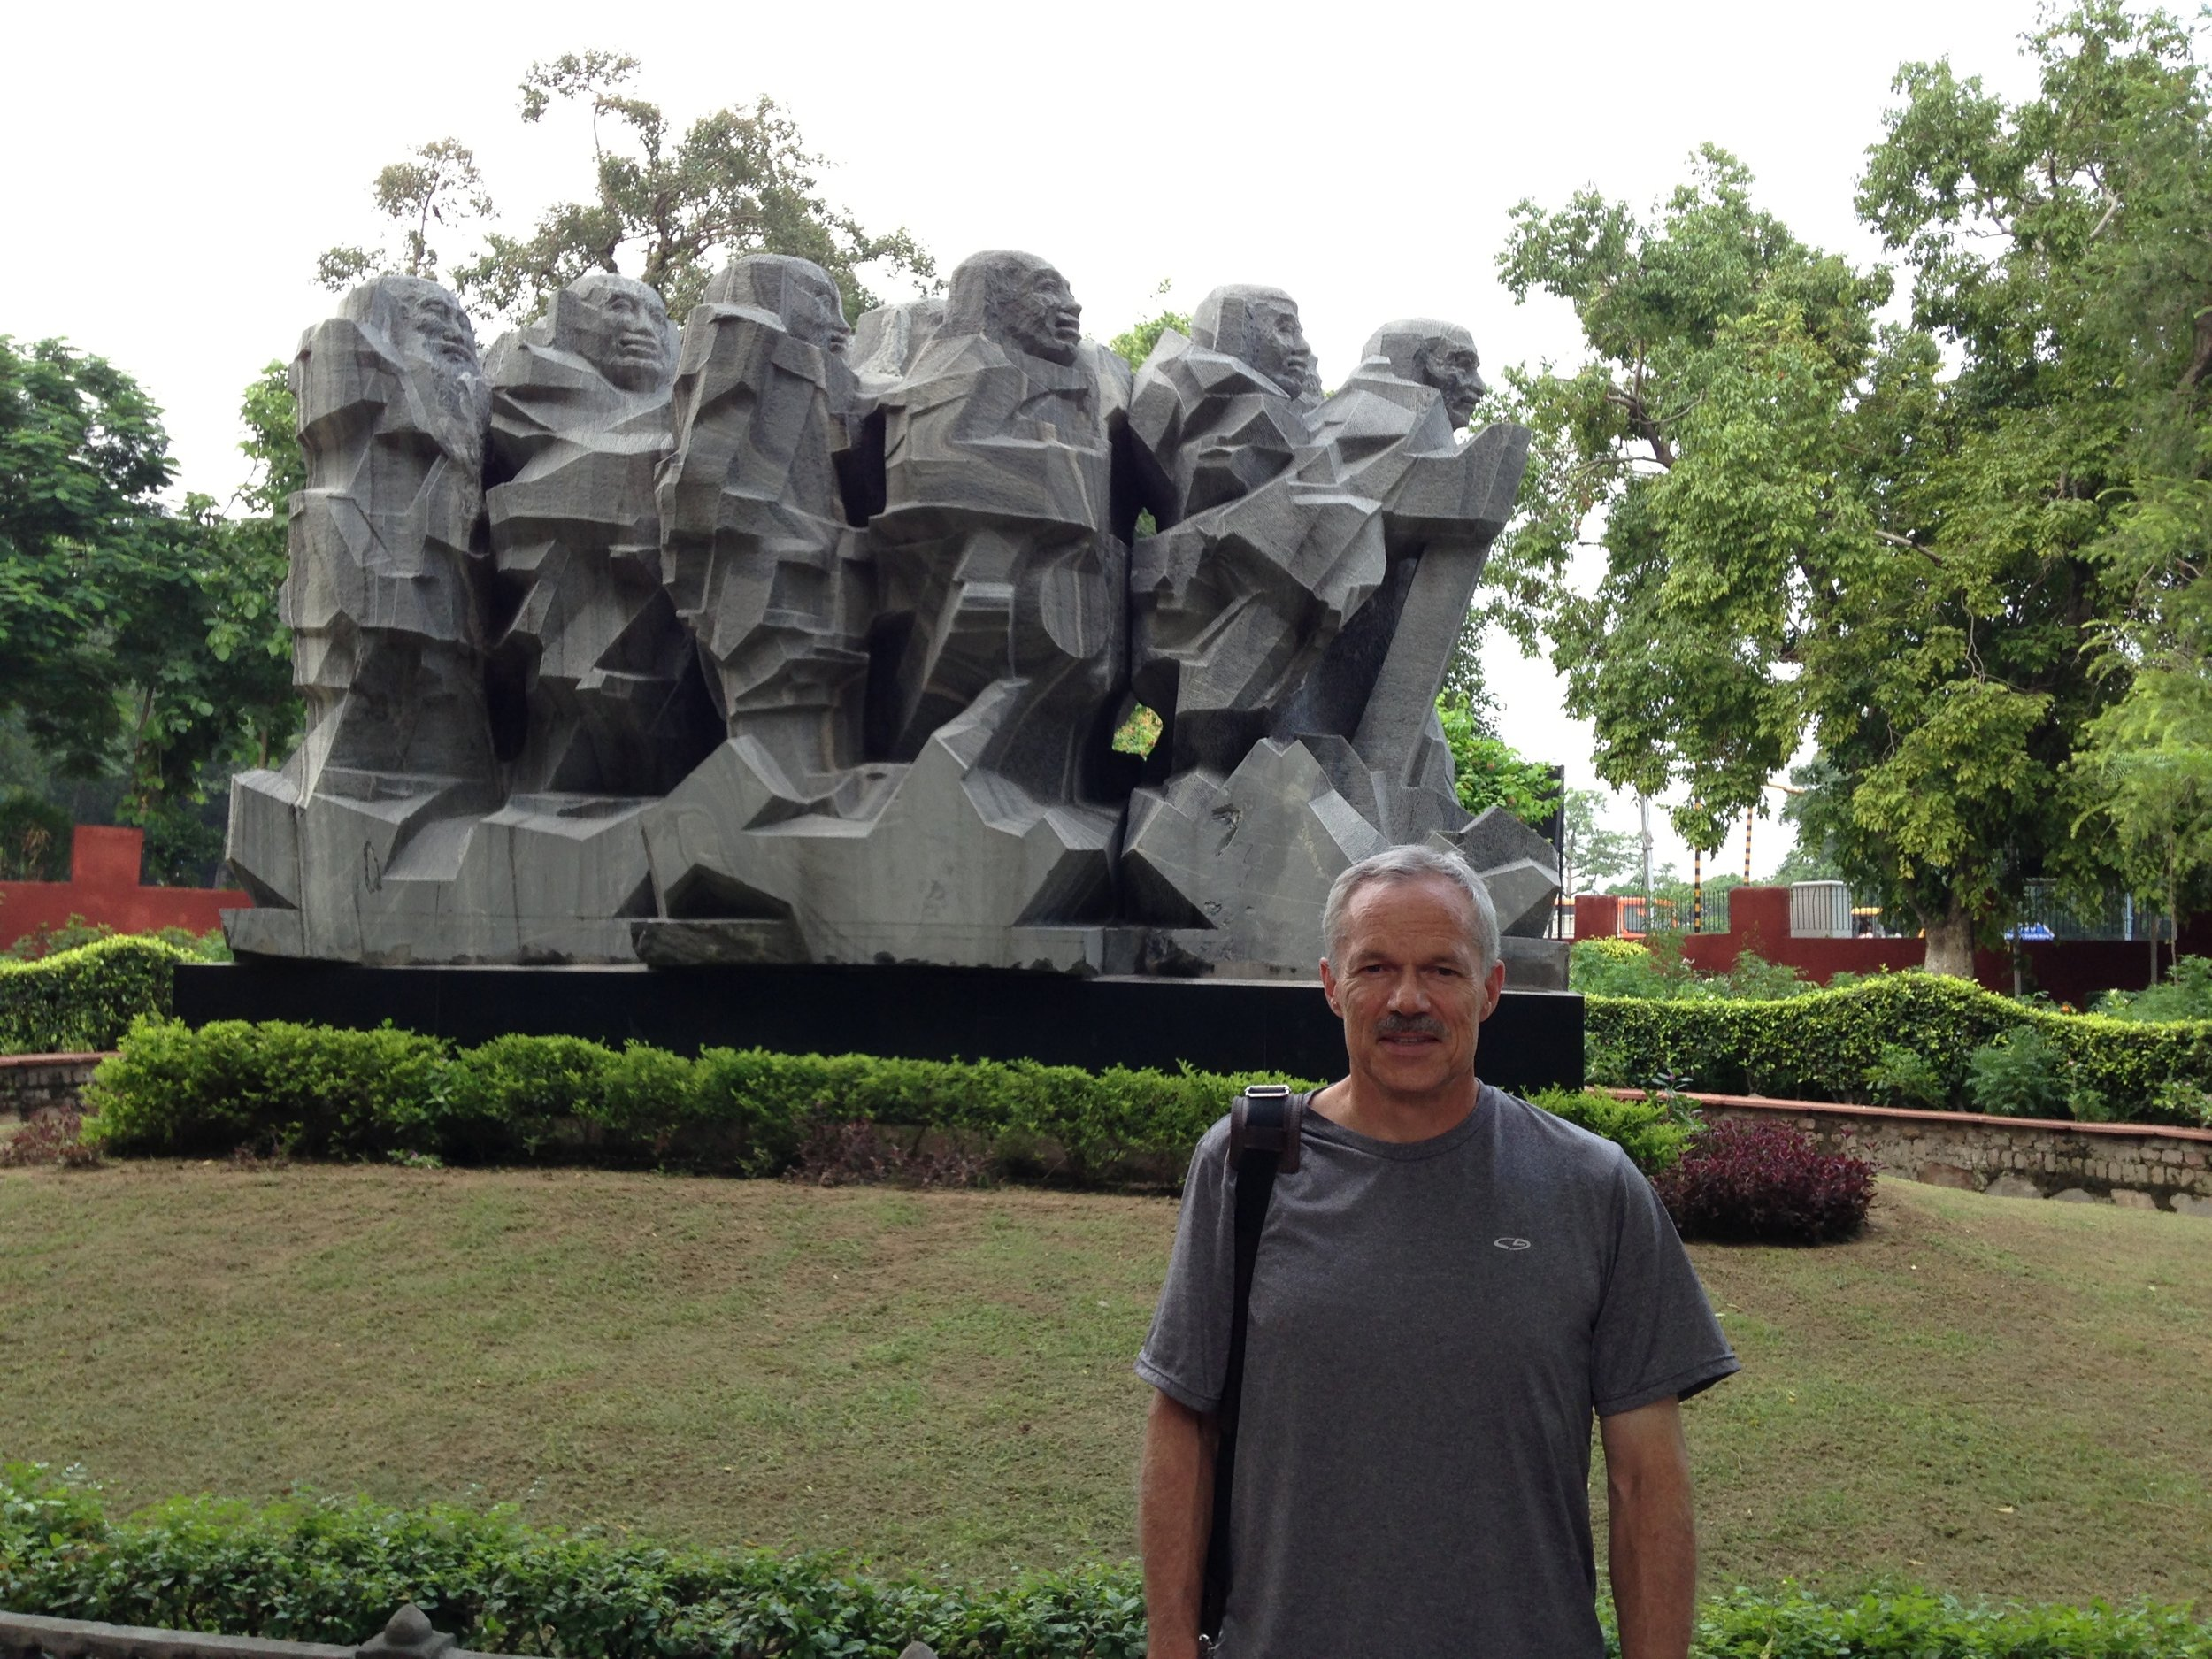 Here outside the Gandhi Museum in New Delhi.